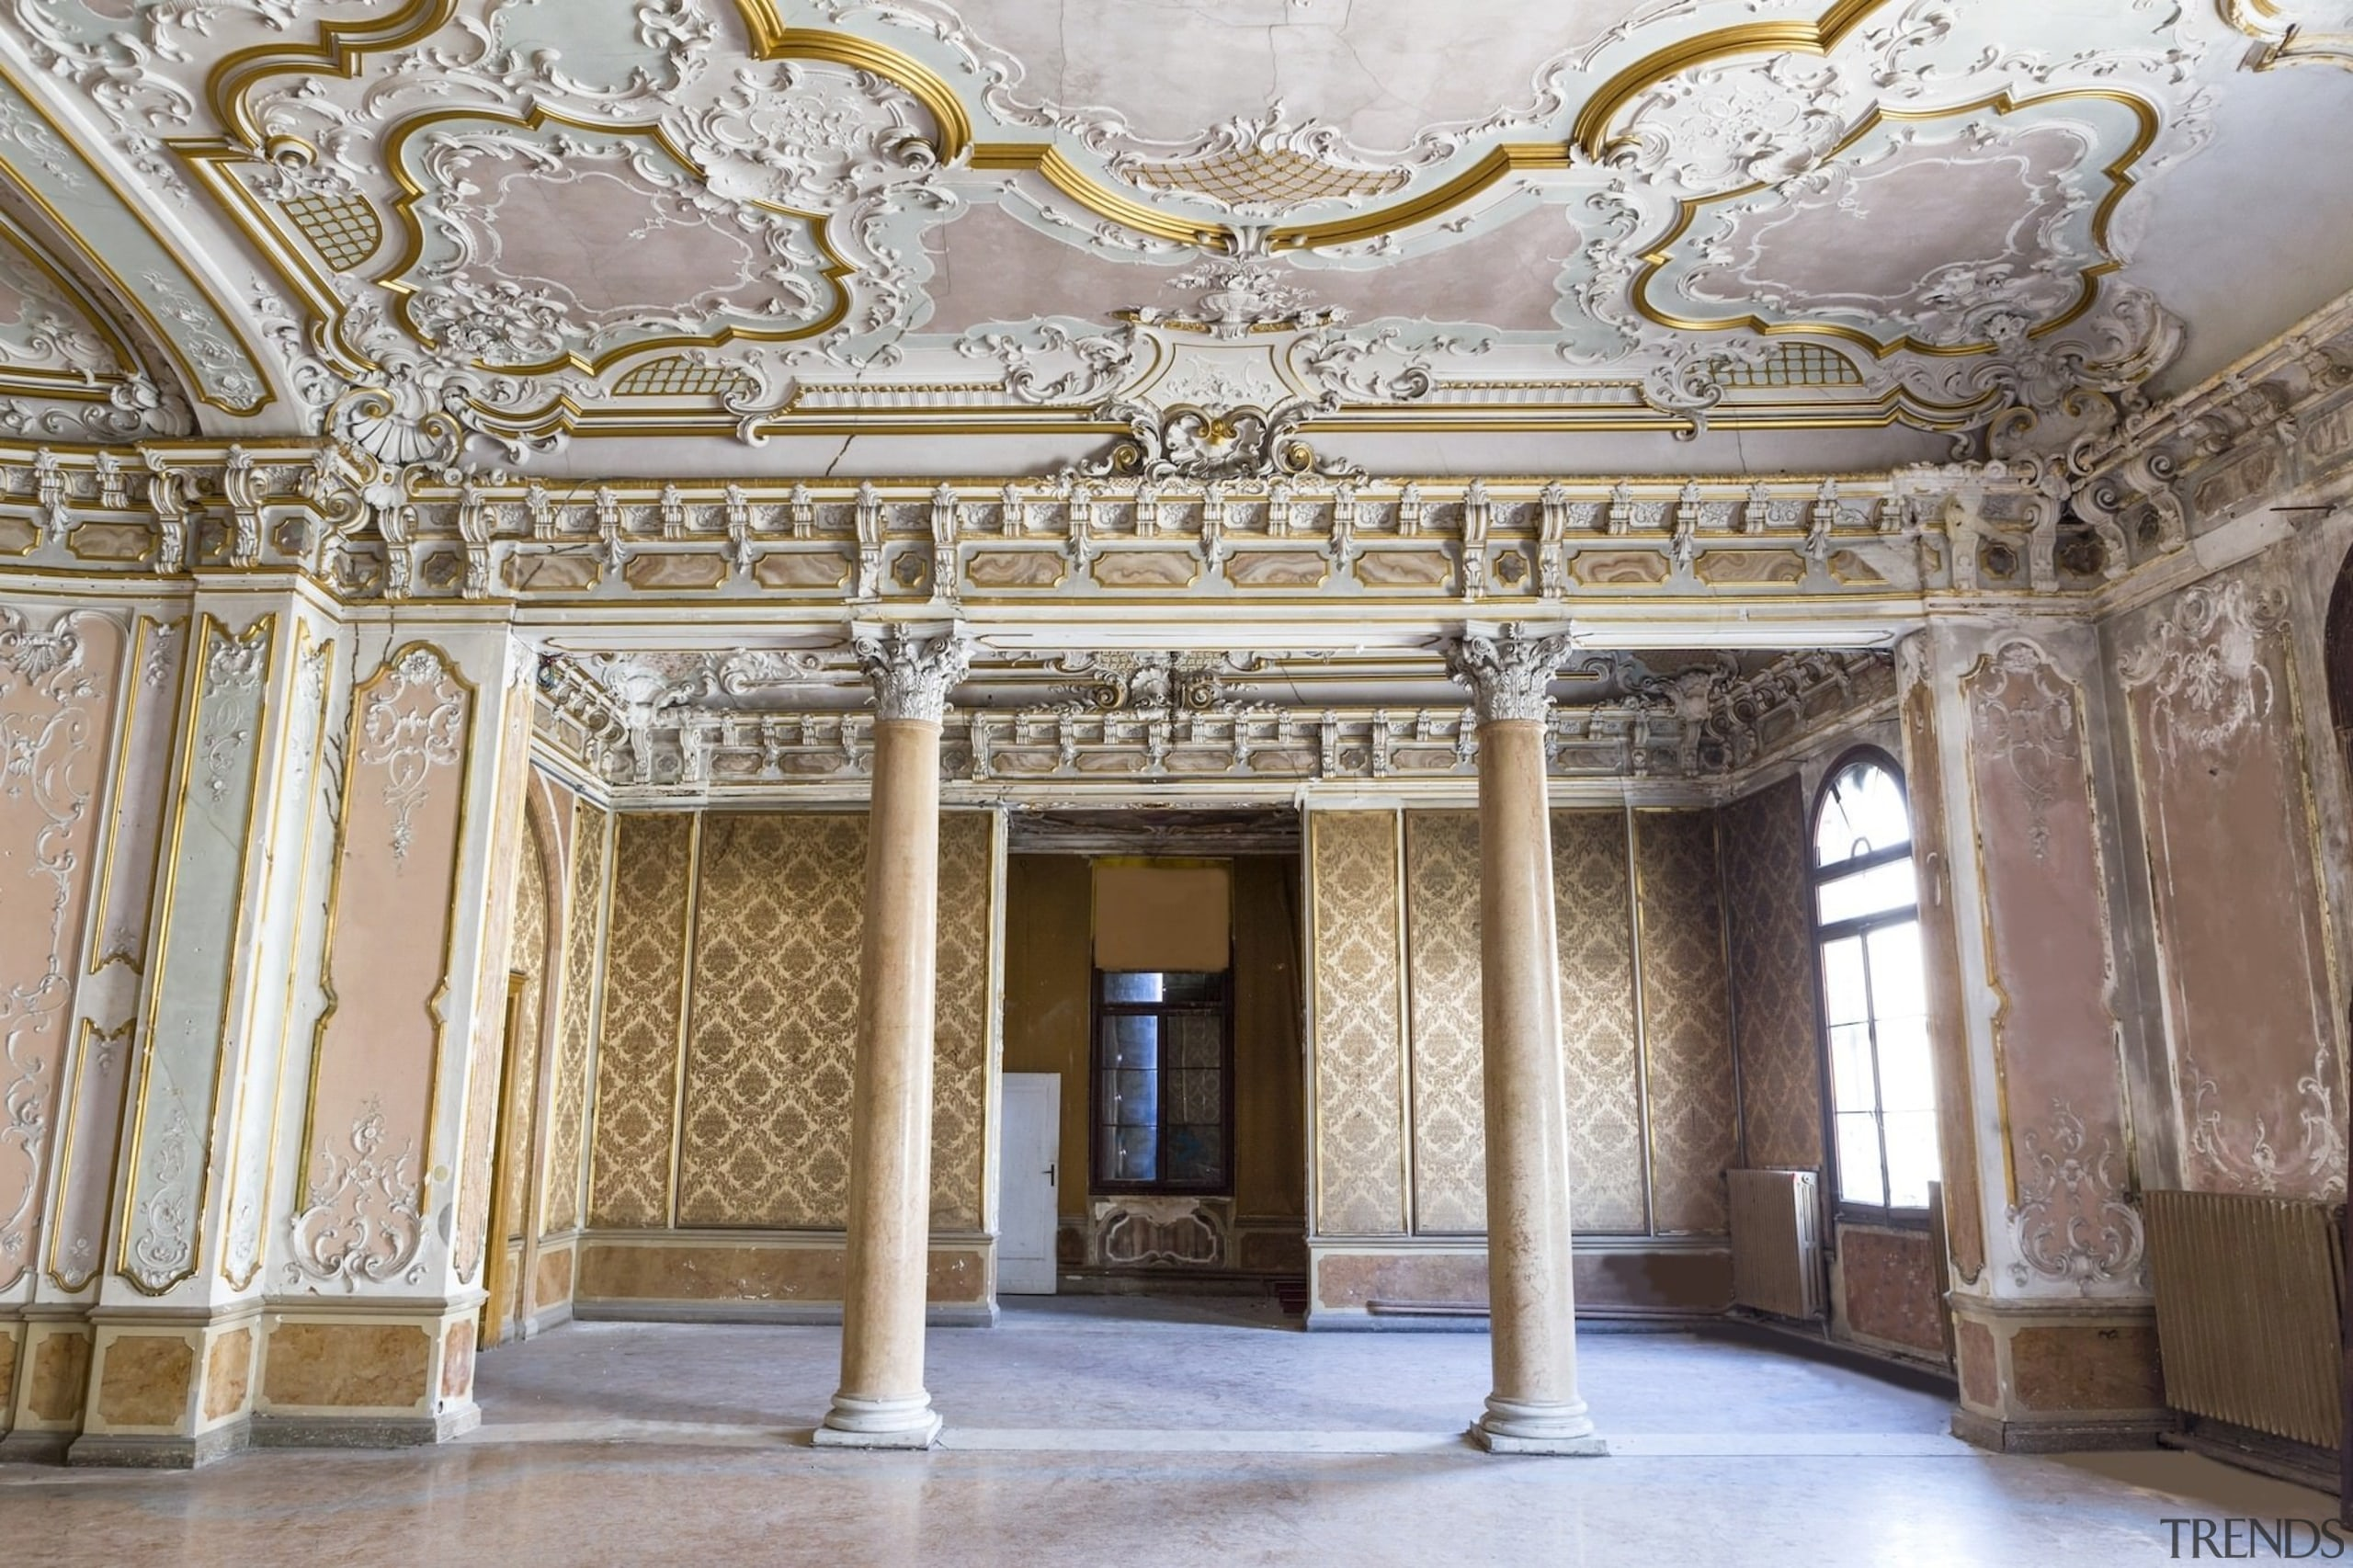 There are original gilded ceilings decorated with stuccoes ceiling, classical architecture, column, interior design, palace, structure, tourist attraction, gray